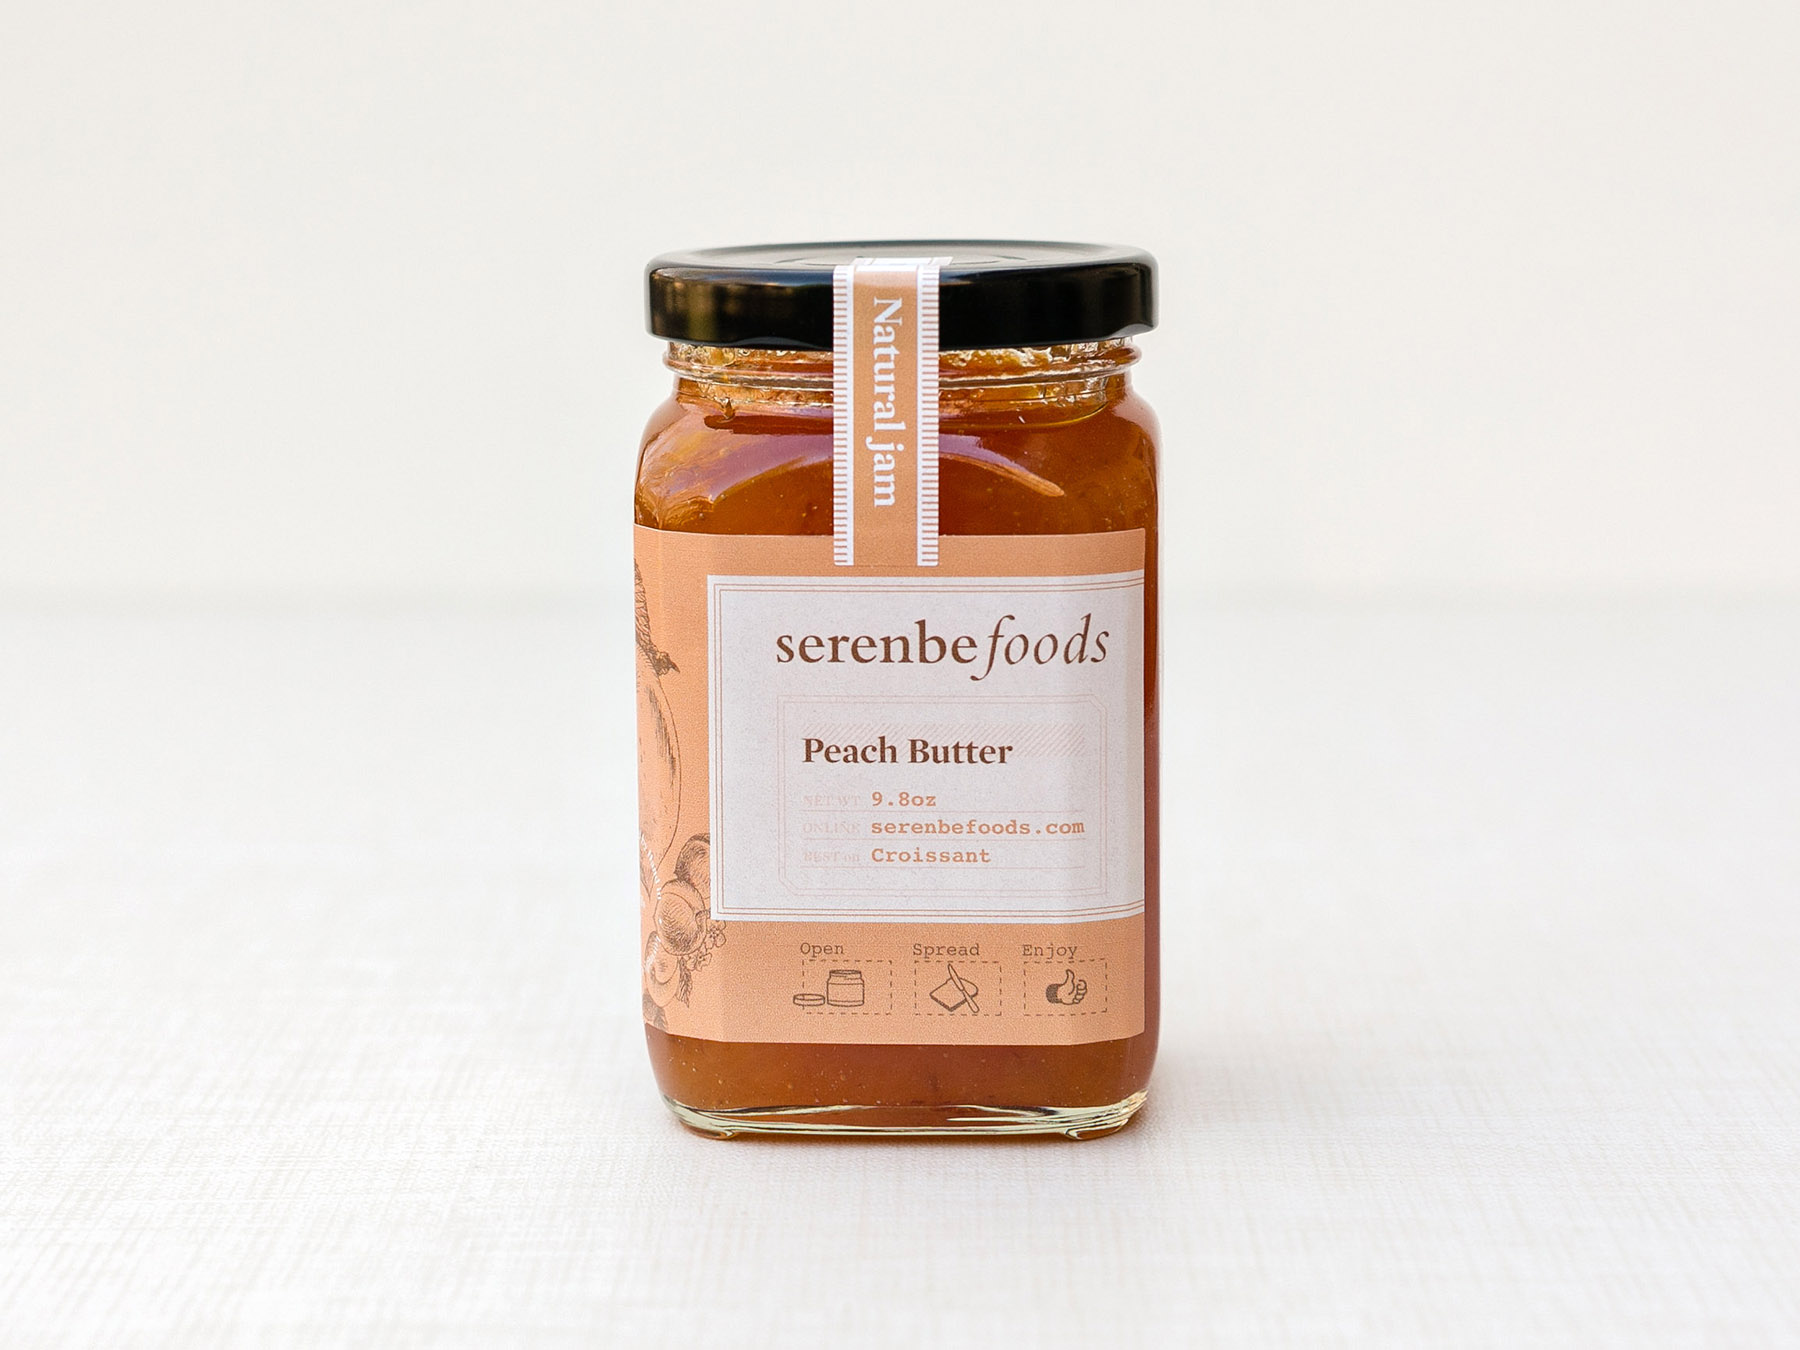 Serenbe Foods peach butter jar label design